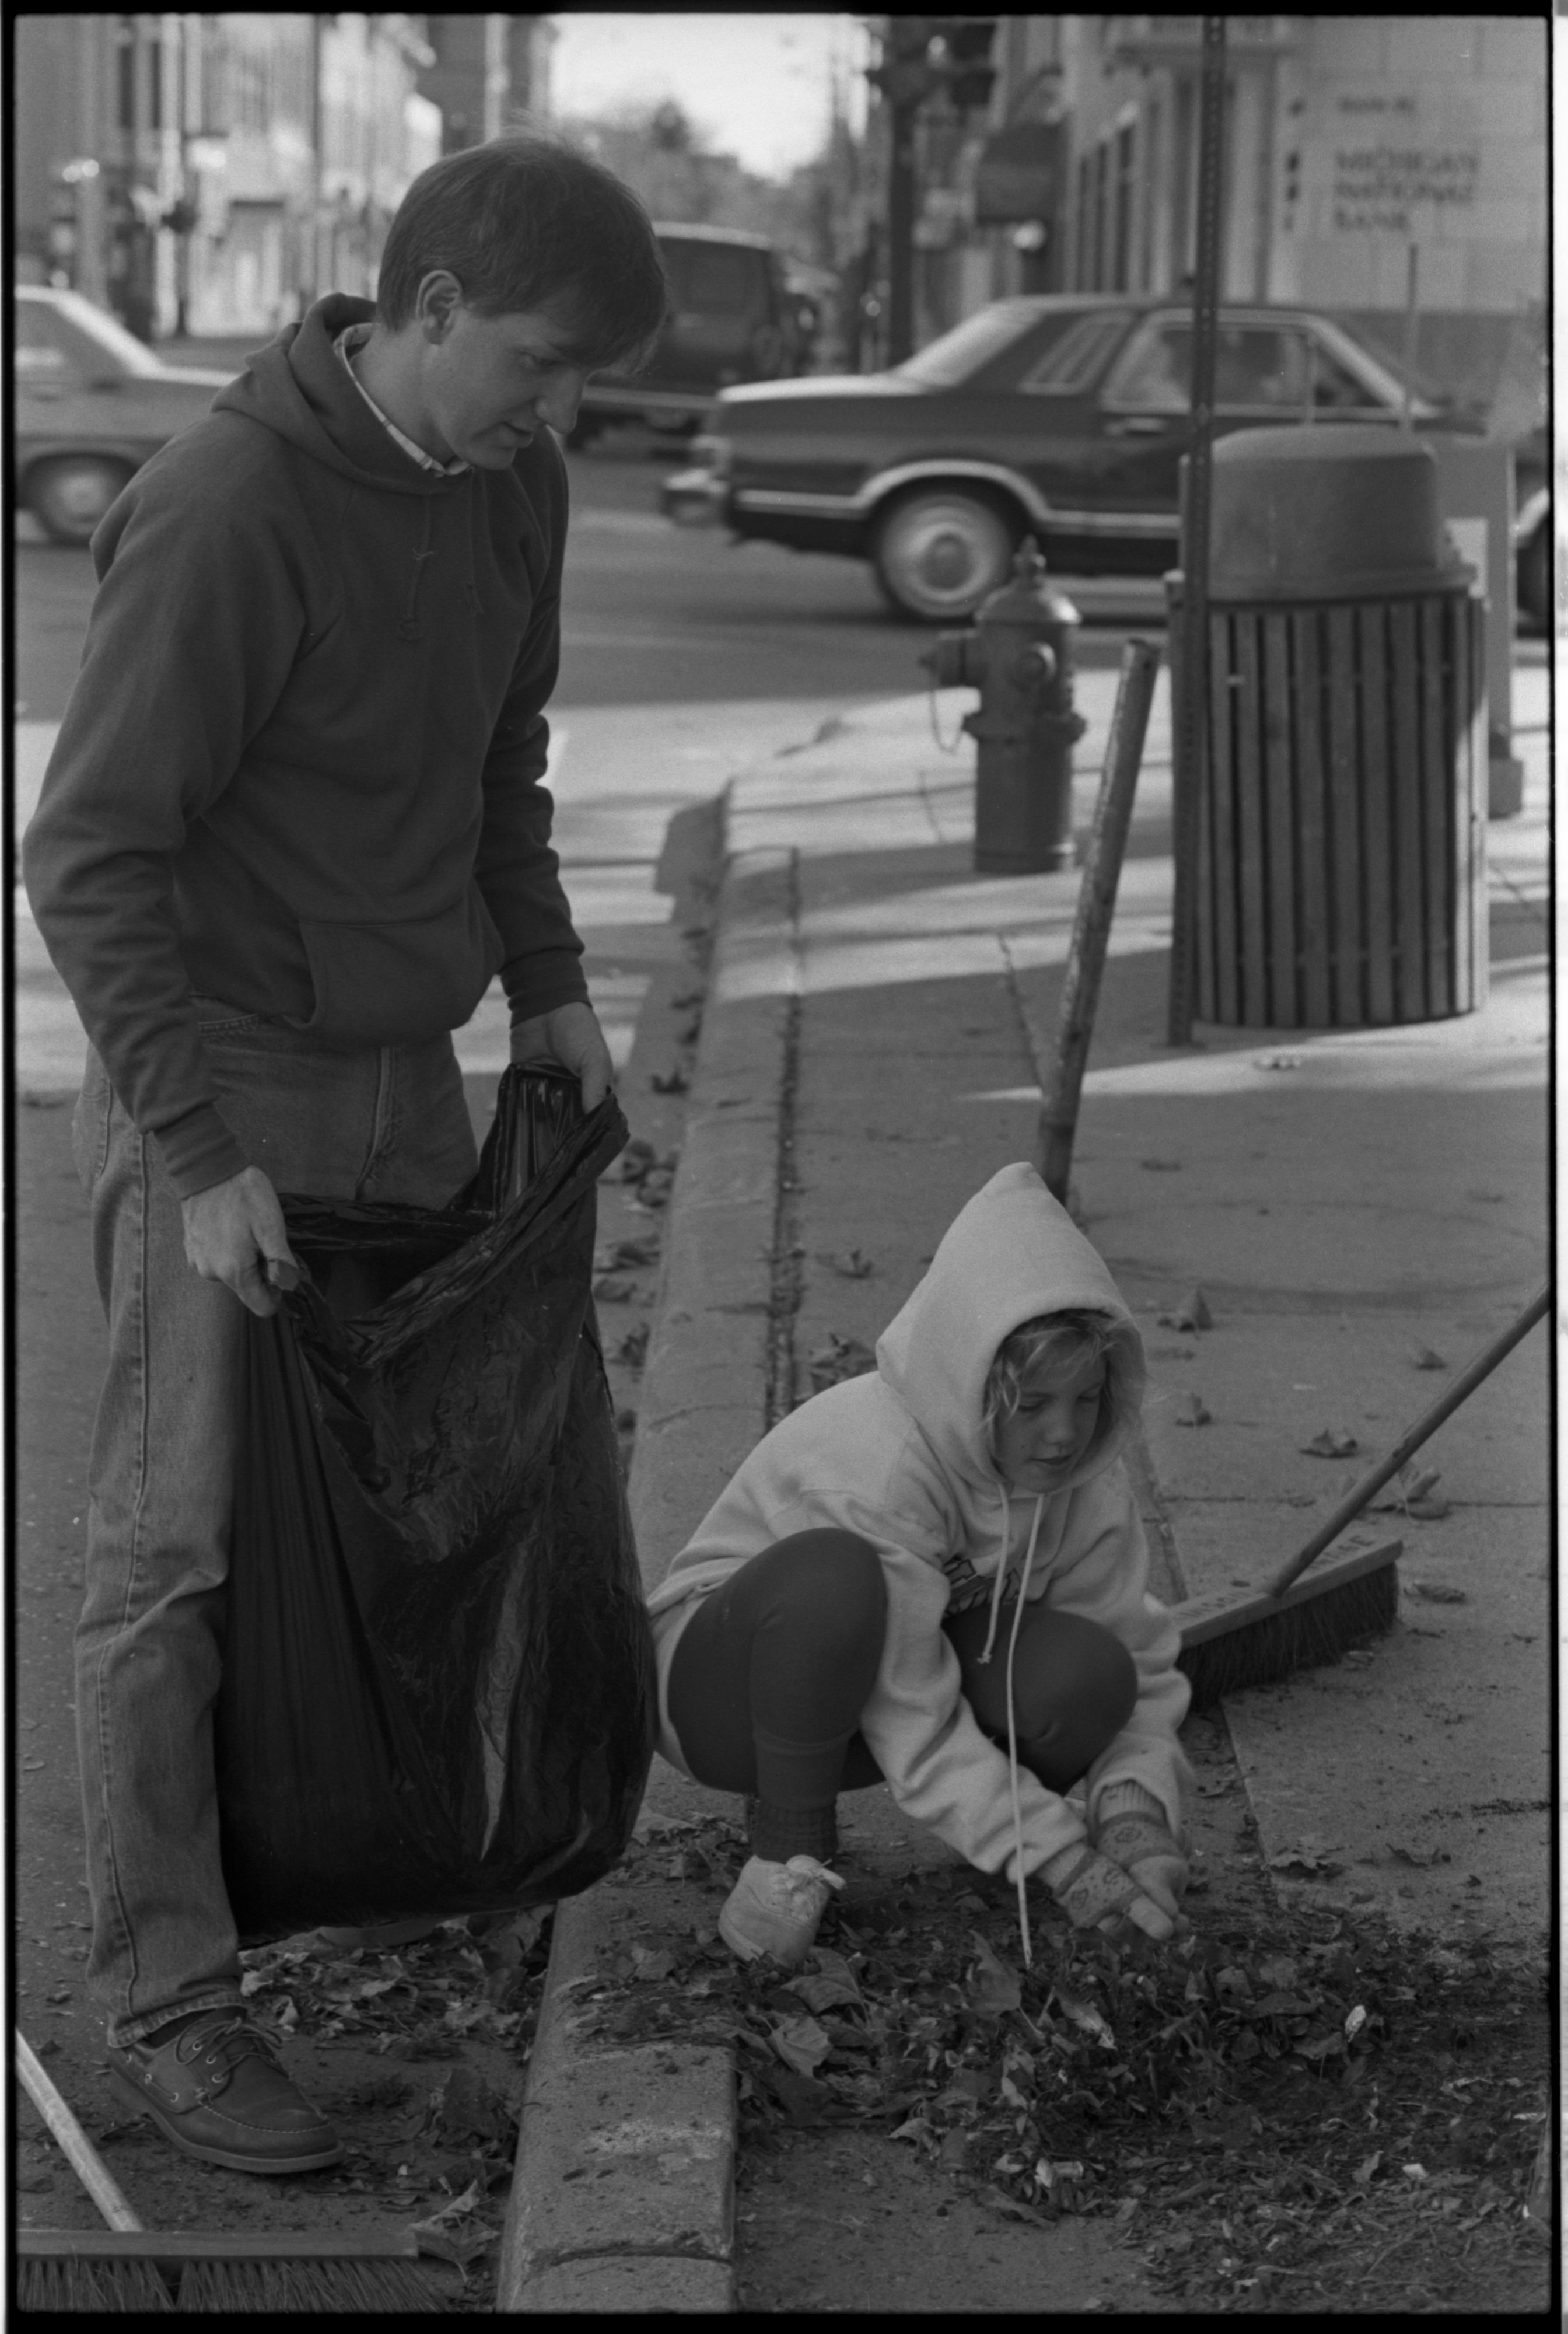 Greg and Molly Mast Assist With Downtown Cleaning, October 1988 image